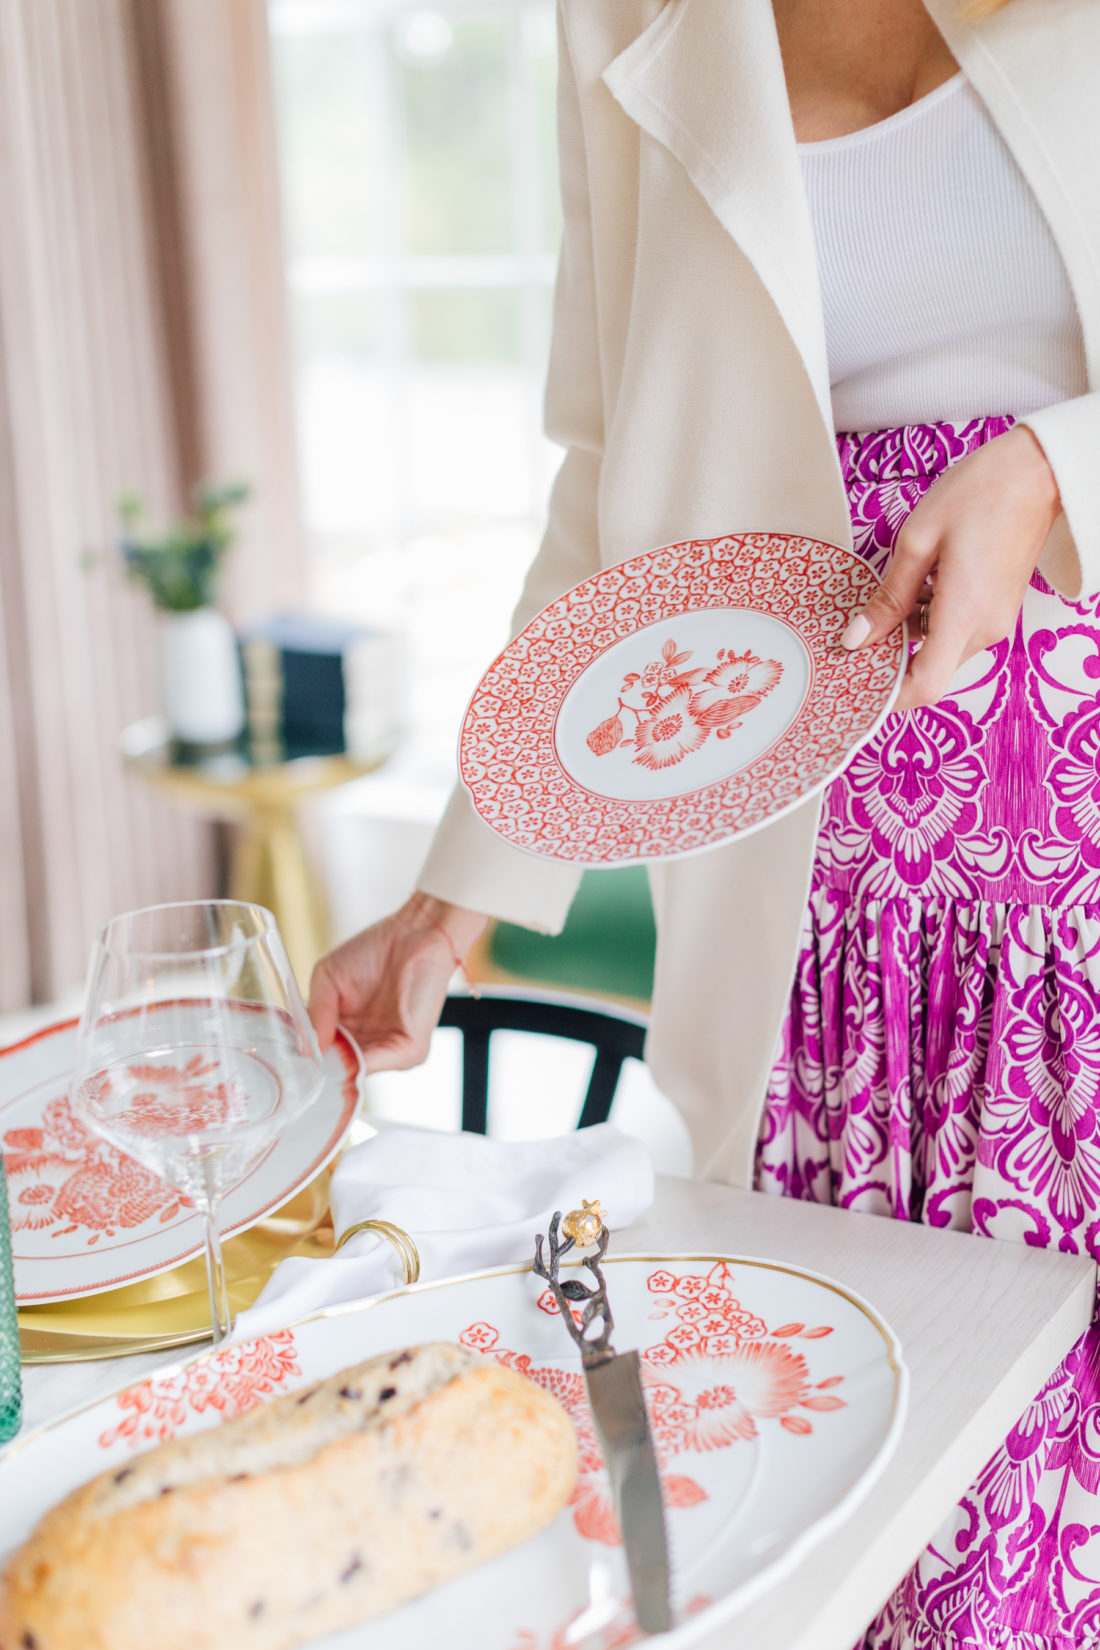 Eva Amurri Martino admires the Oscar de la Renta Coralina China pattern that's part of her 2019 Thanksgiving Decor